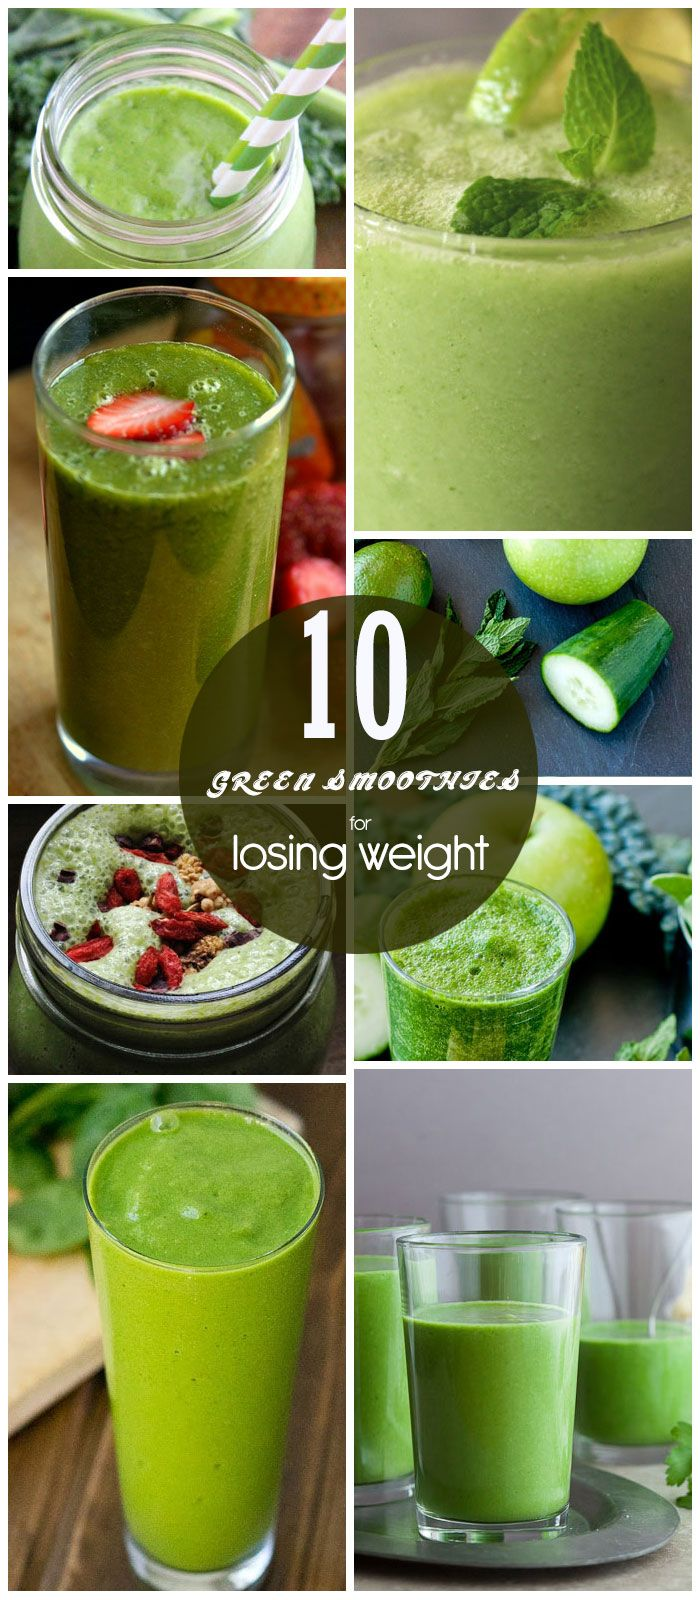 7 Delicious Green Smoothie Recipes for Weight Loss